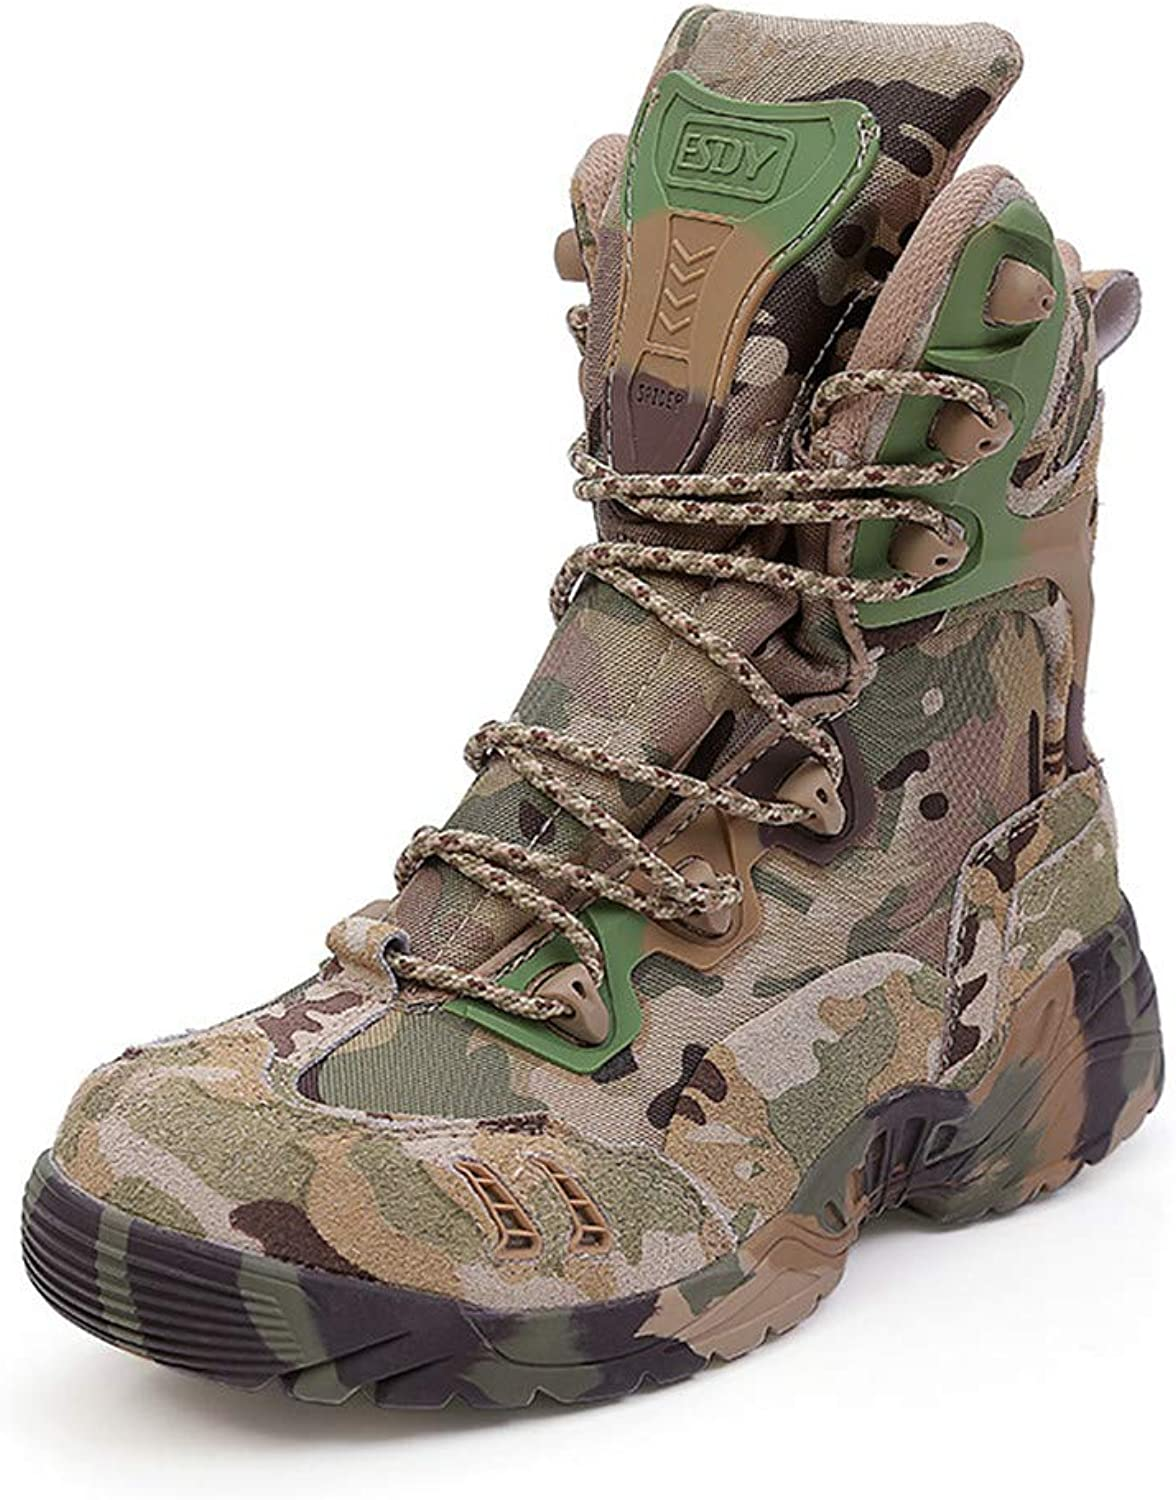 Boots Delta Desert Boots Special Forces Army Boots Outdoor Camouflage Hiking shoes Hiking Camping, Shooting Sports, Extreme Challenge